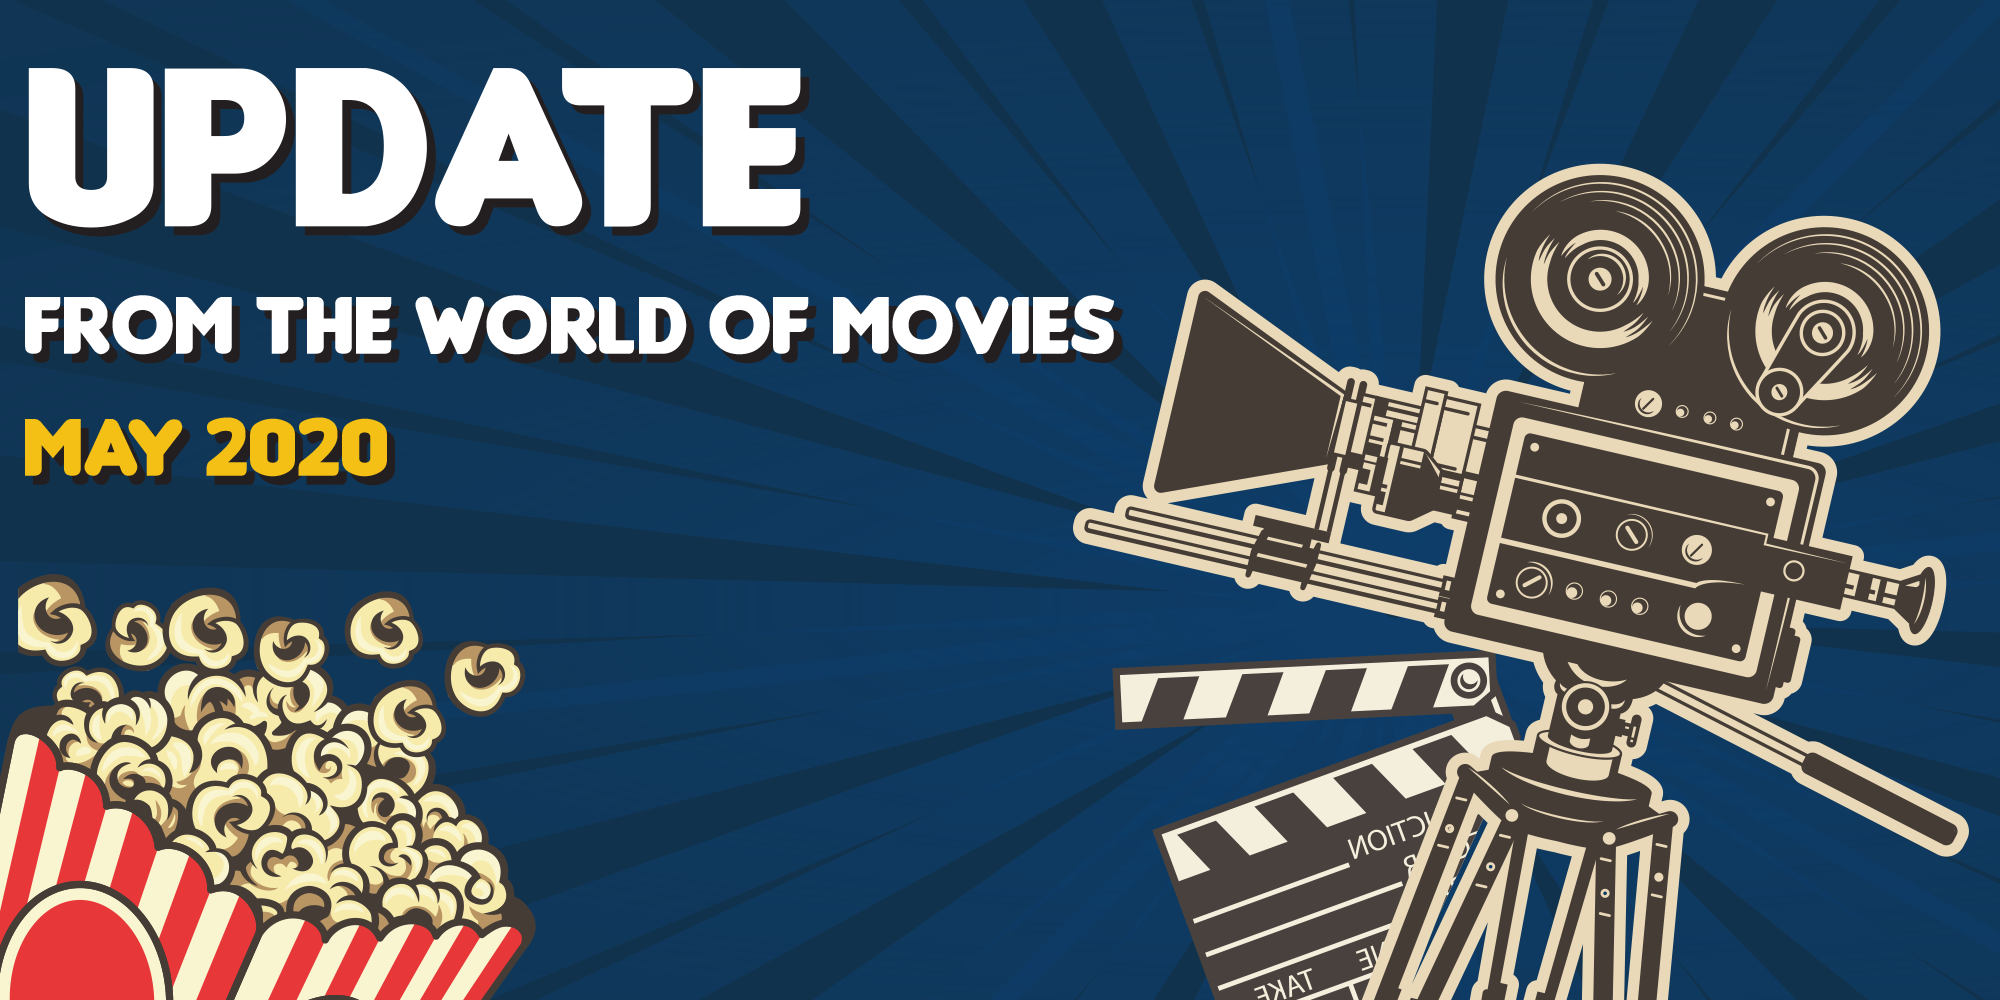 The Latest News from the World of Movies - May 2020